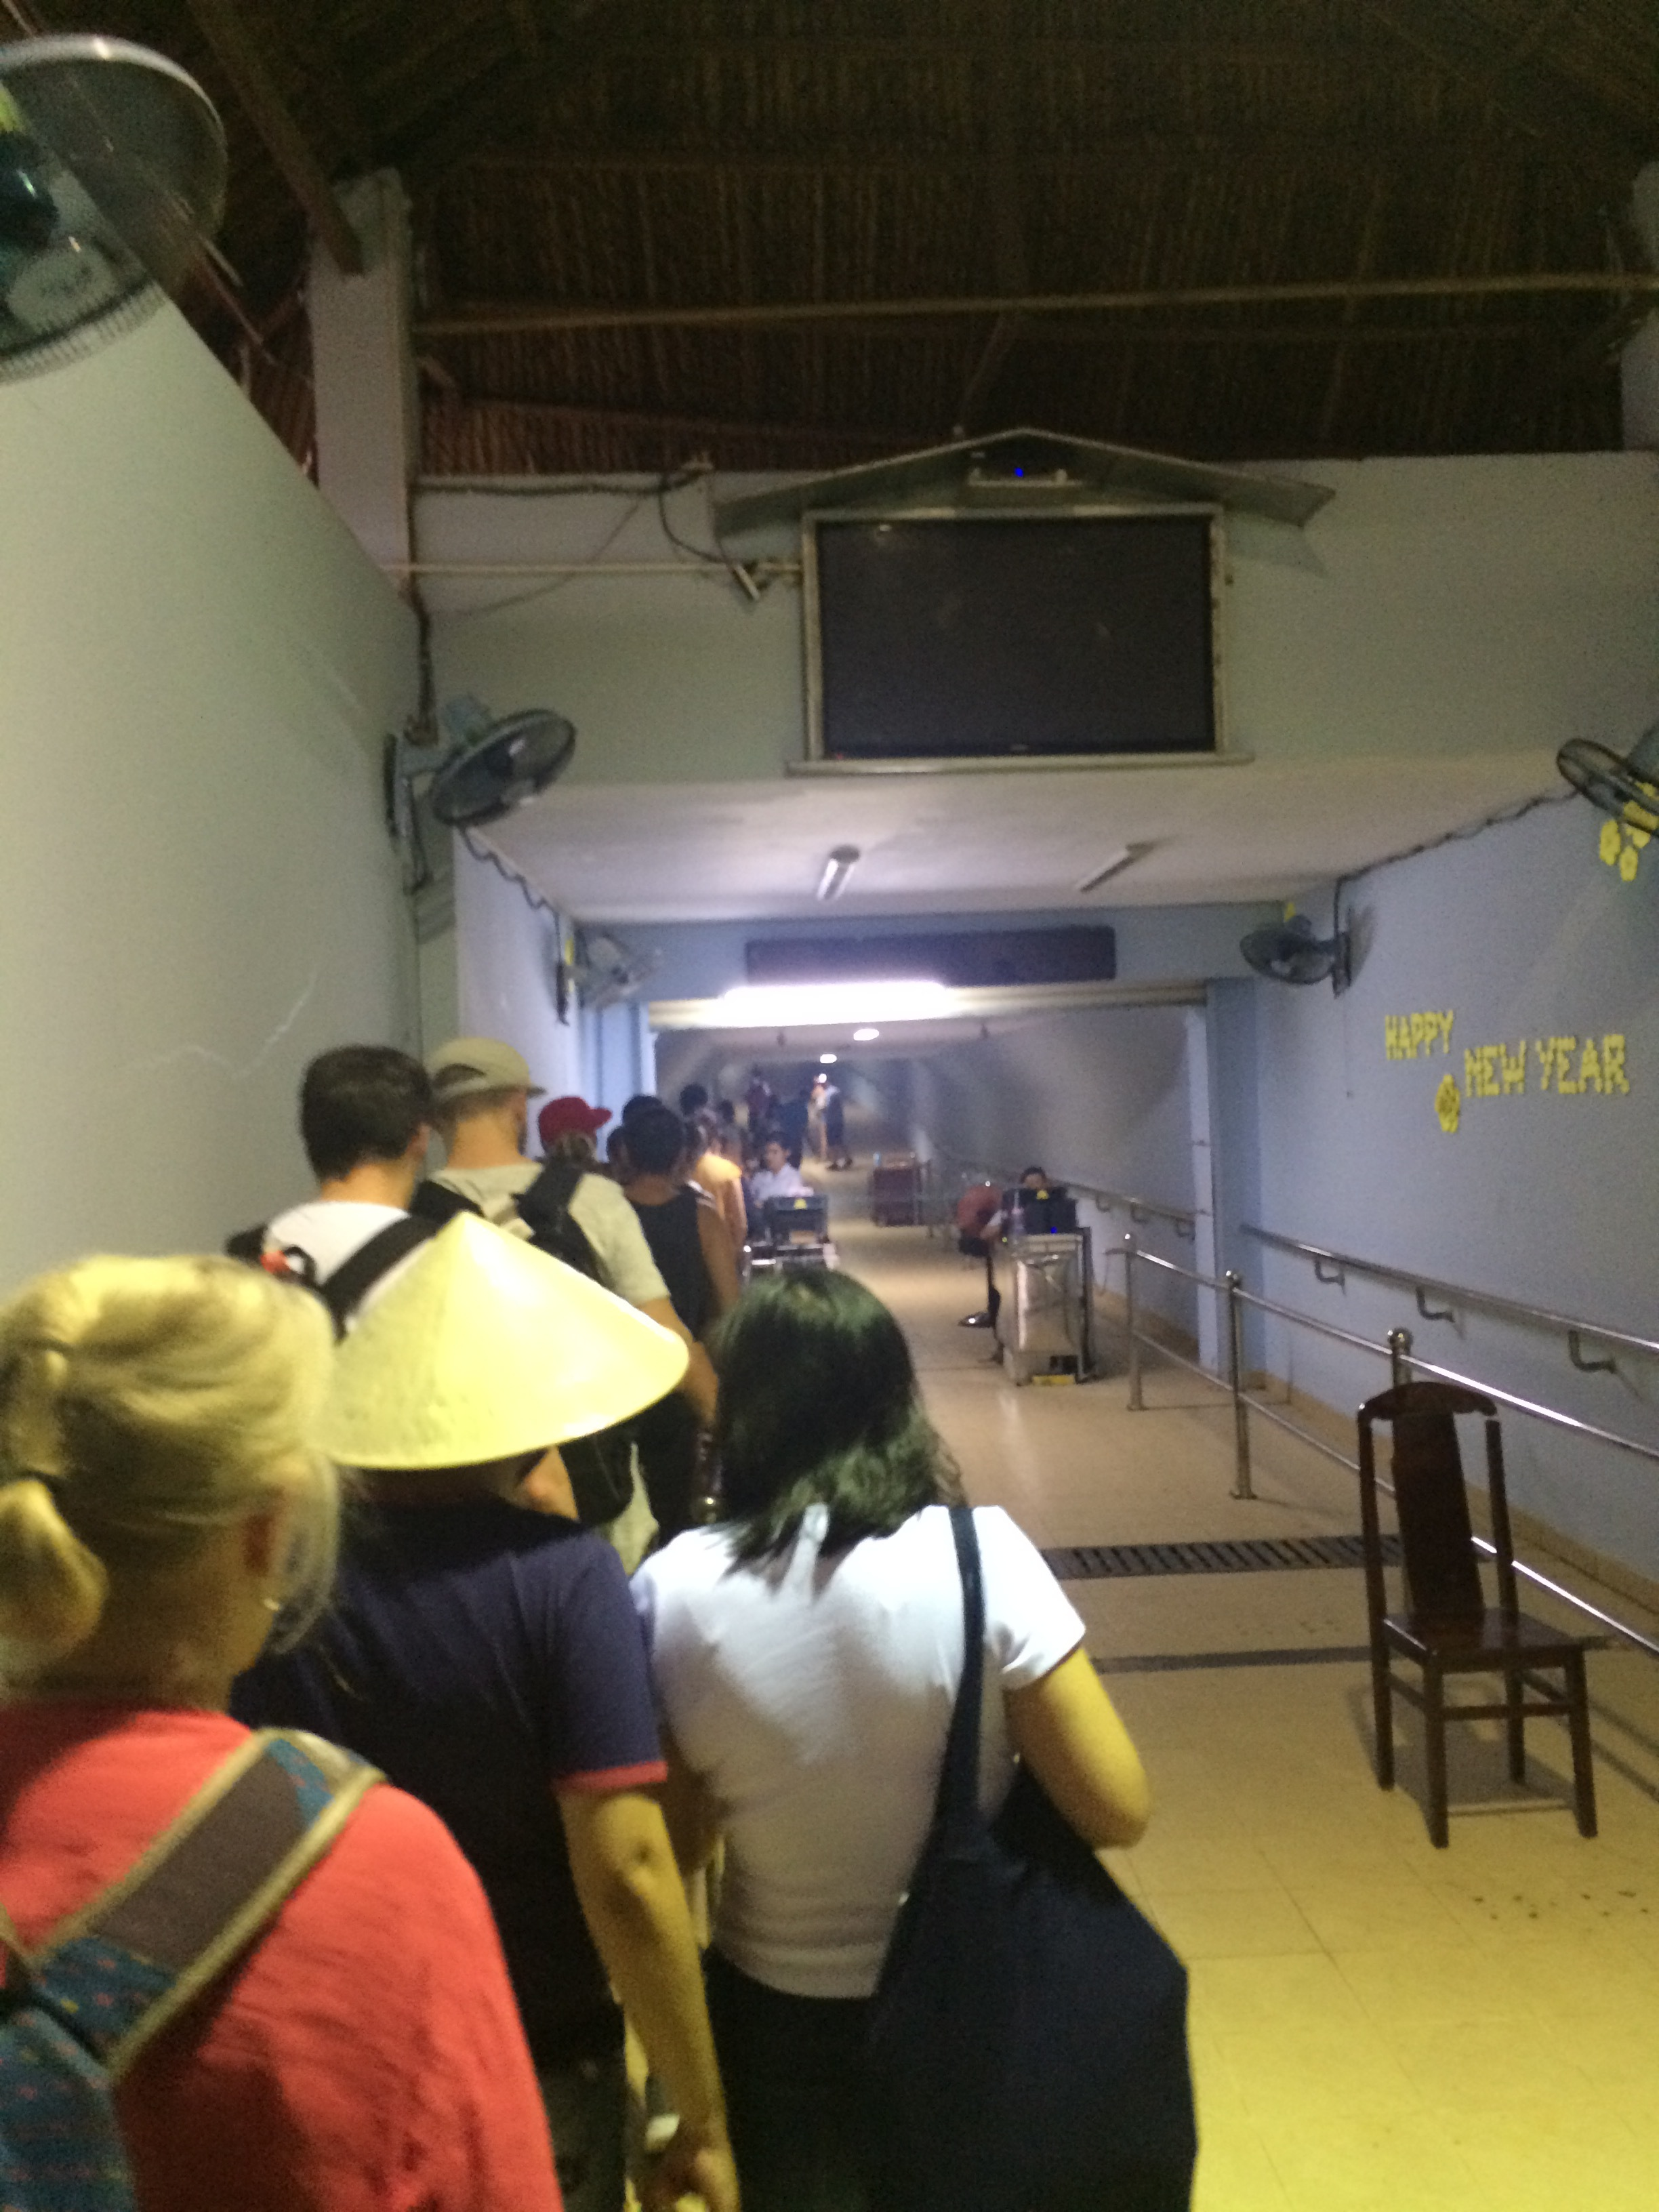 The line into the tunnel area